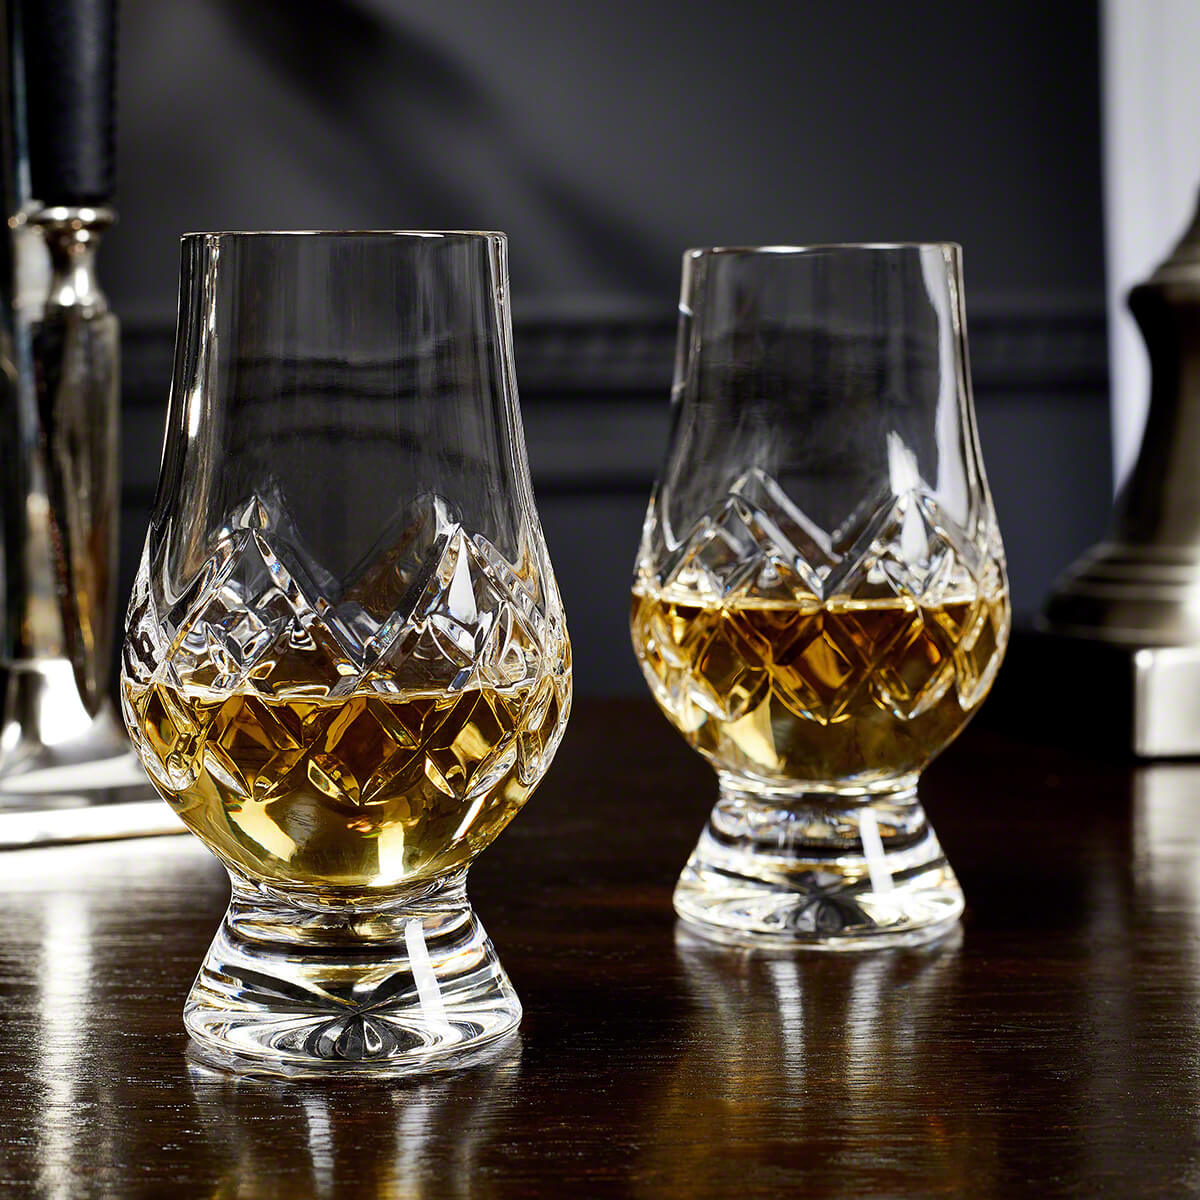 Proper Glasses For Drinking Scotch